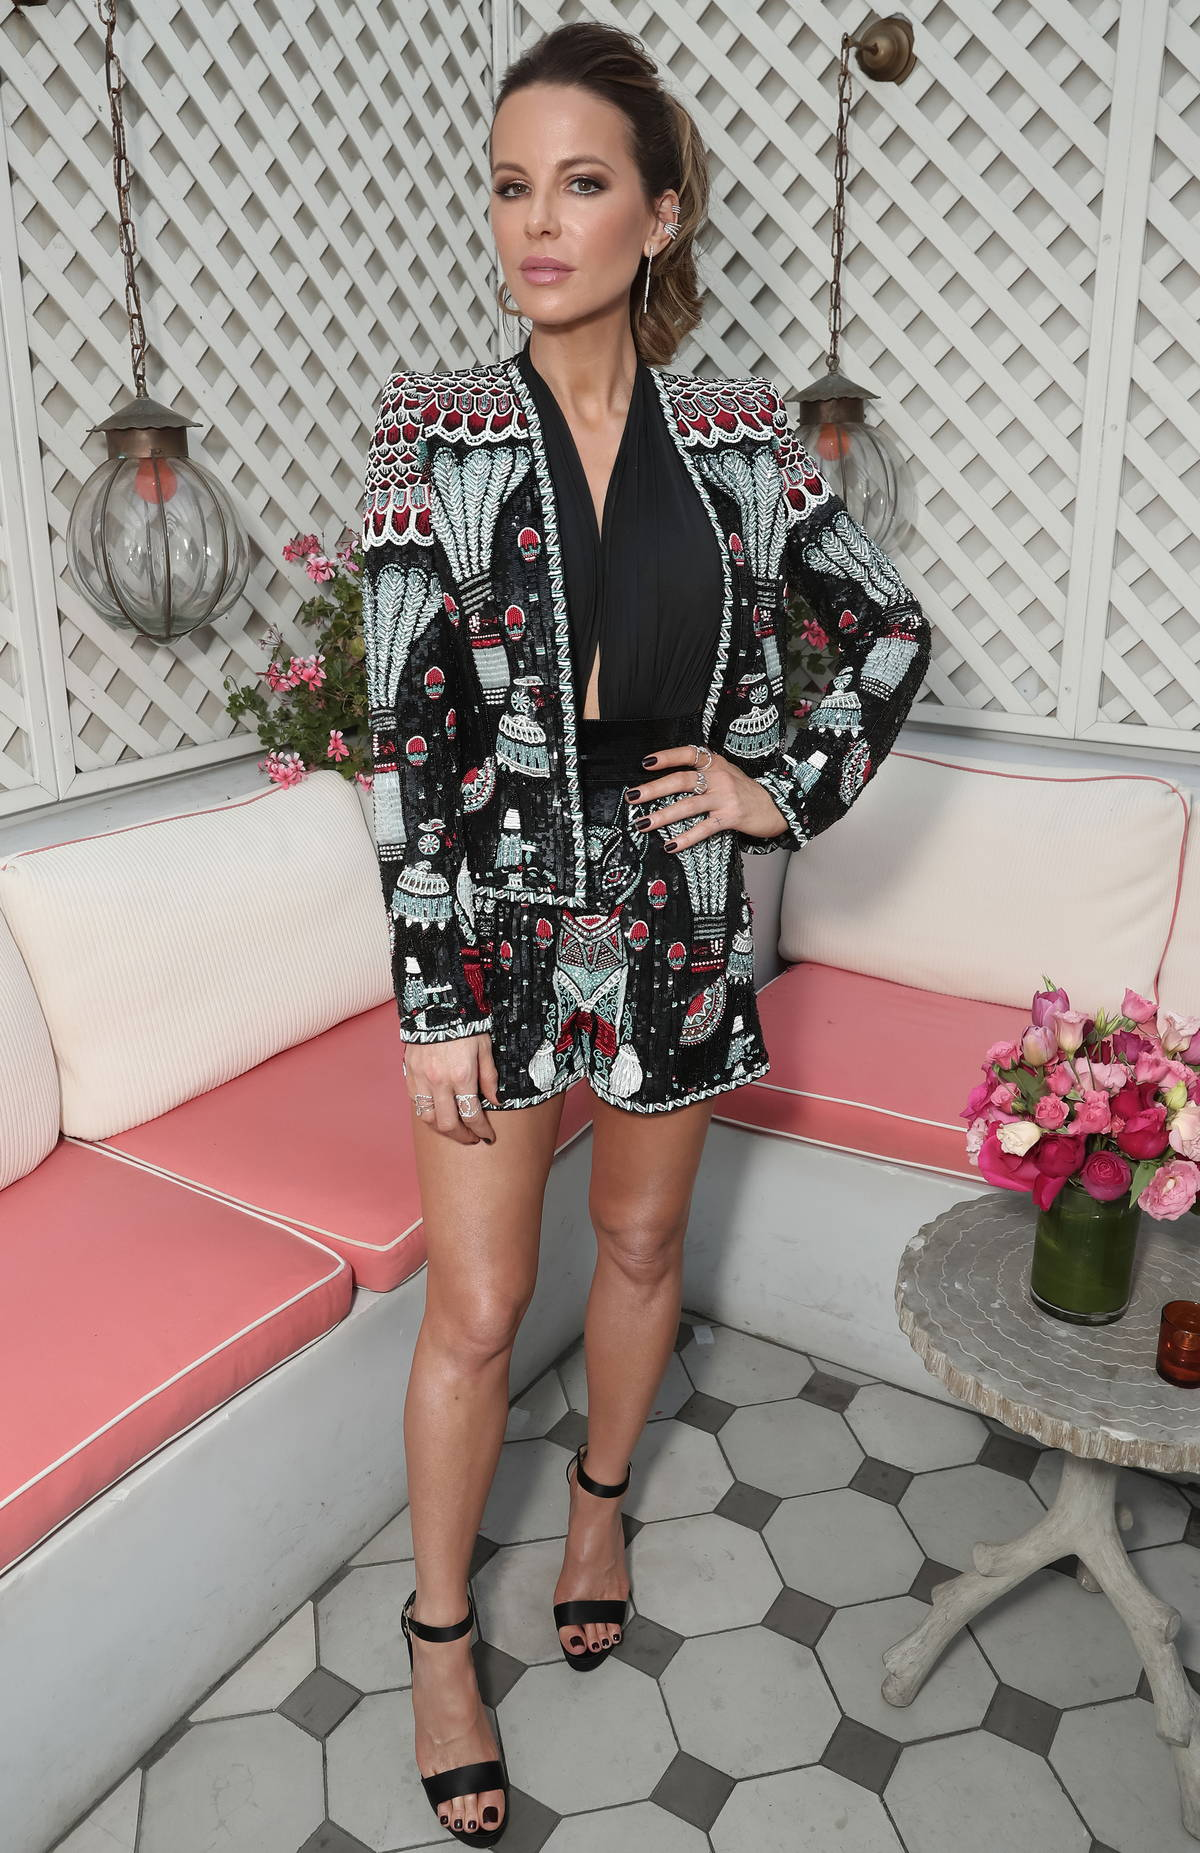 Kate Beckinsale attends a special screening for 'Jolt' in Los Angeles